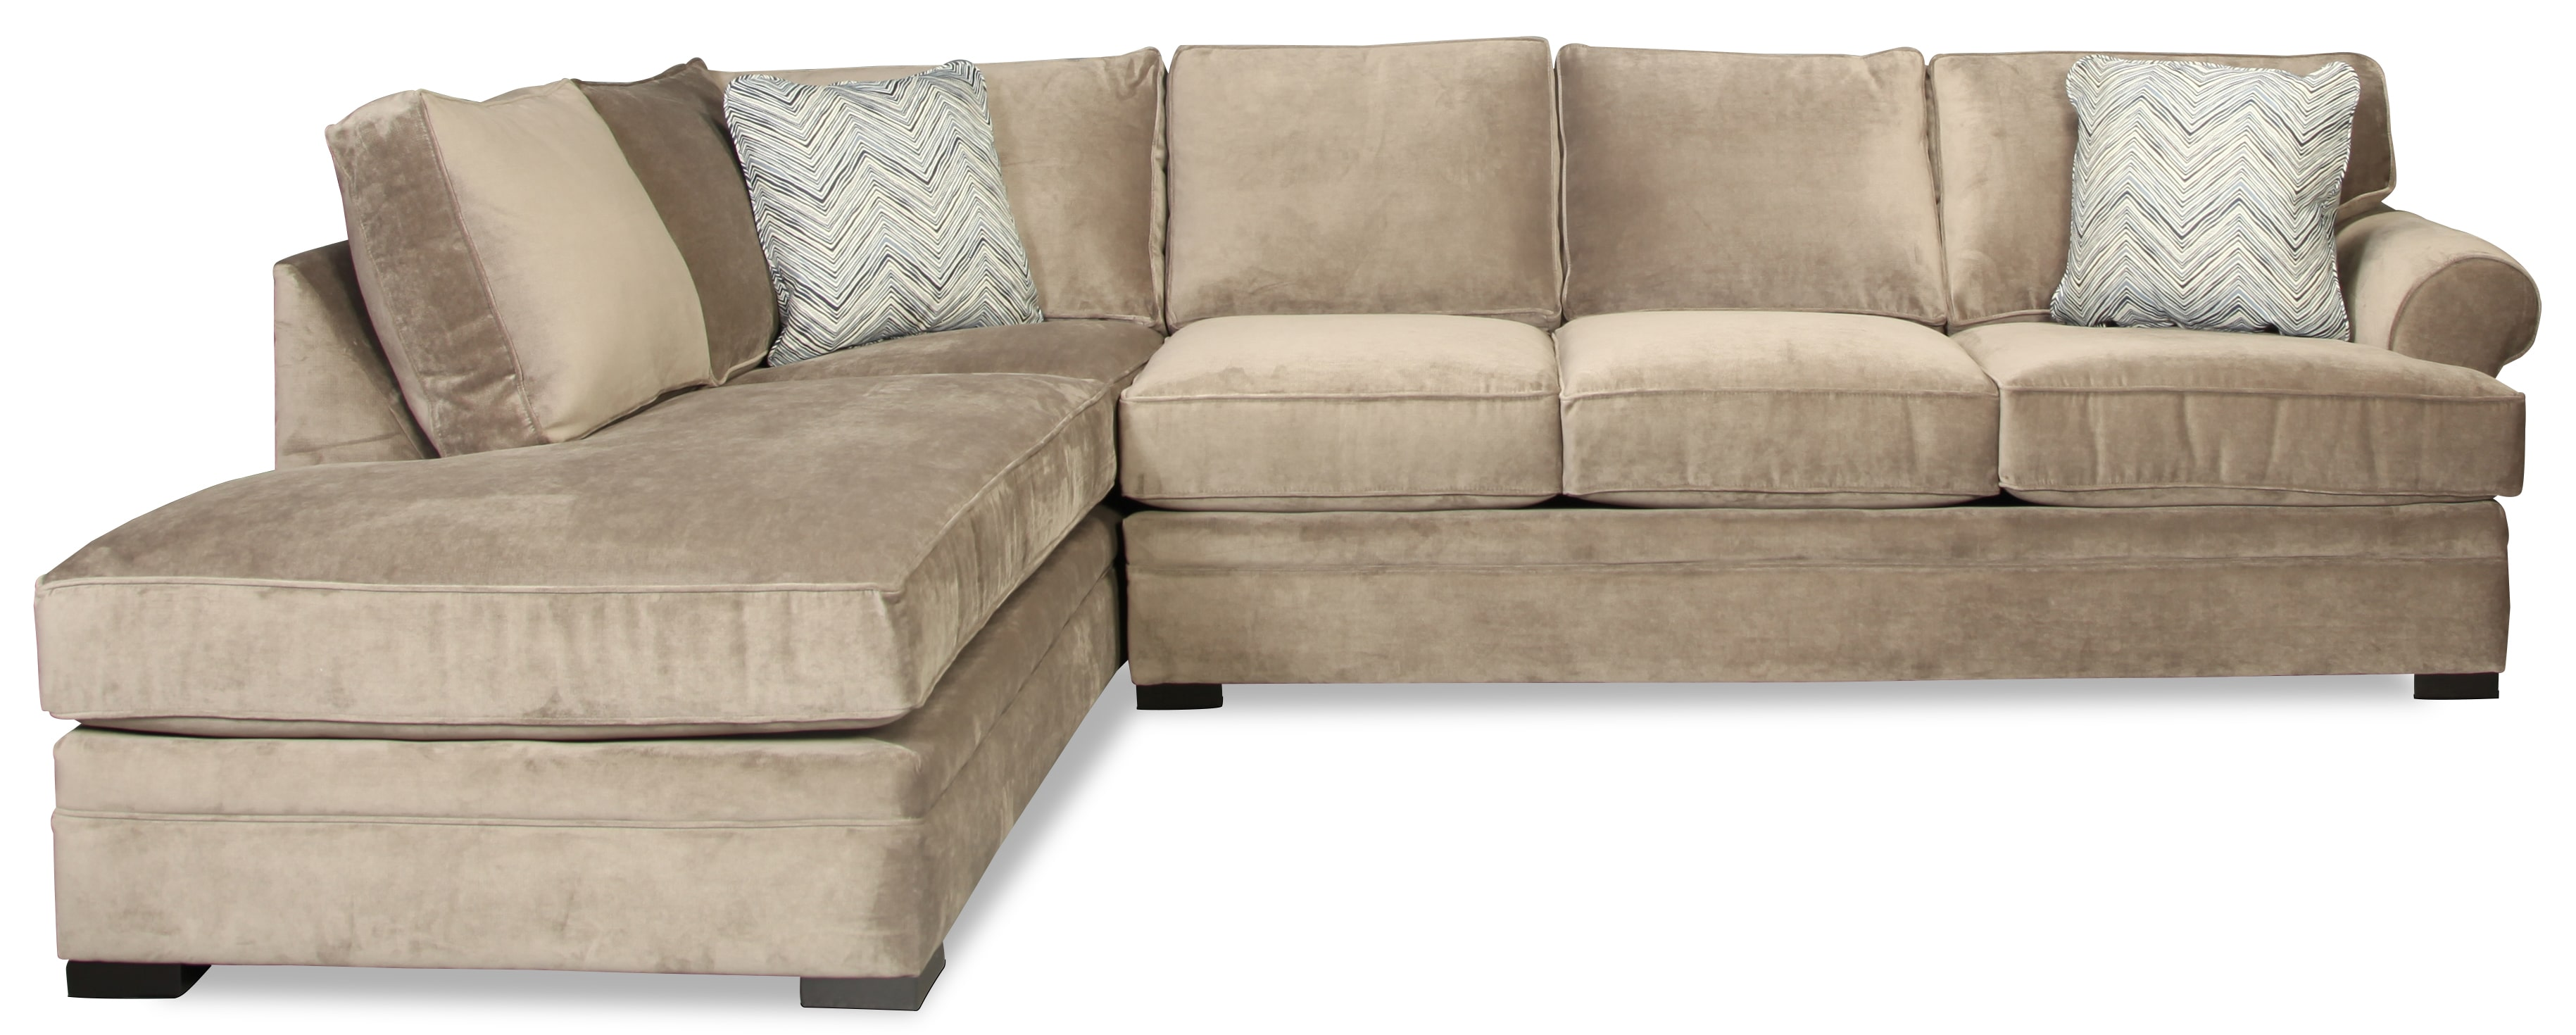 Cheney 2 piece sectional levin furniture for Levin furniture sectional sofa